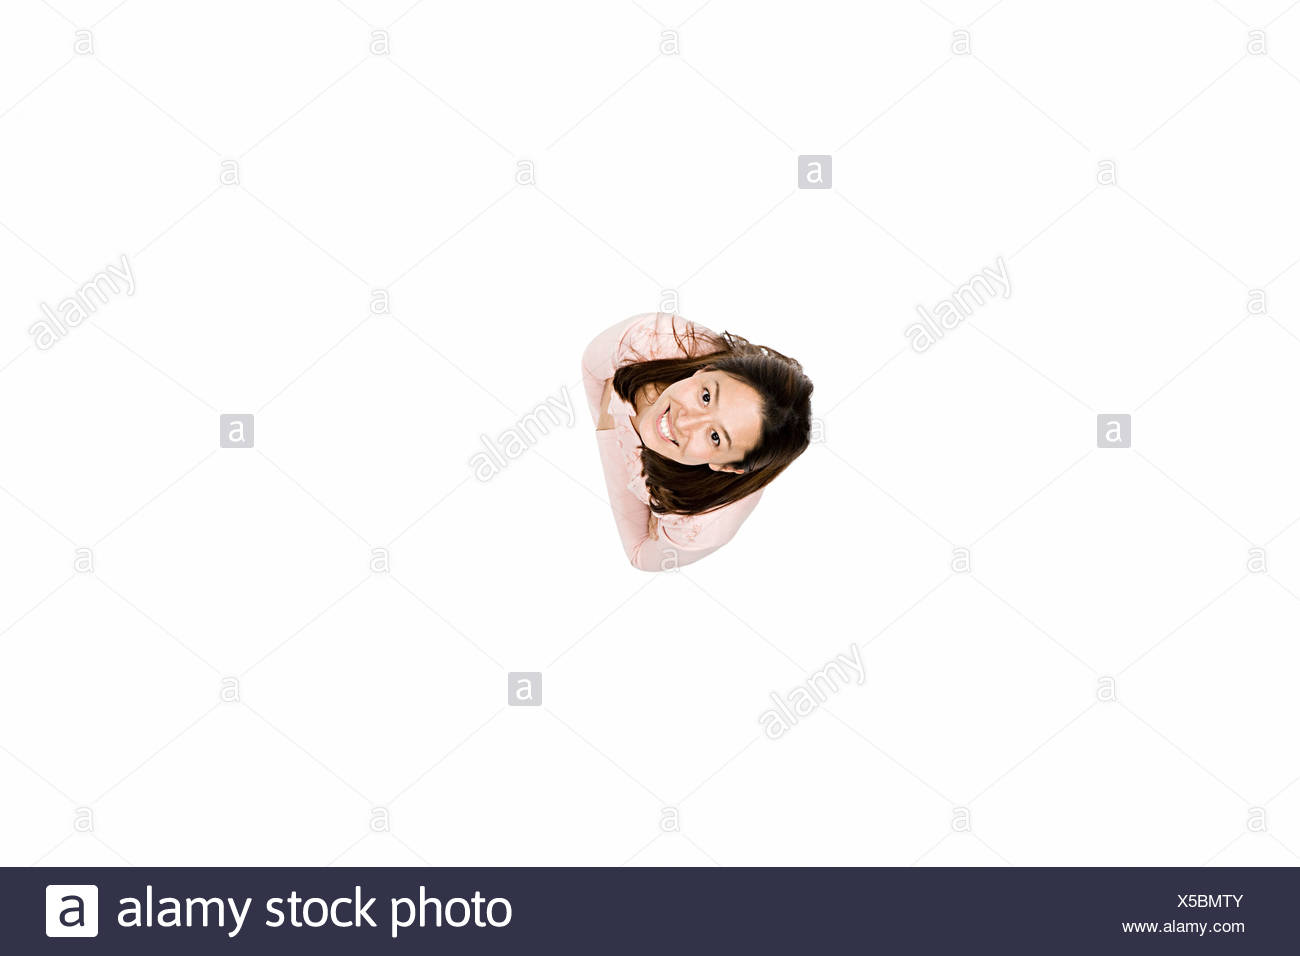 Elevated view of woman - Stock Image